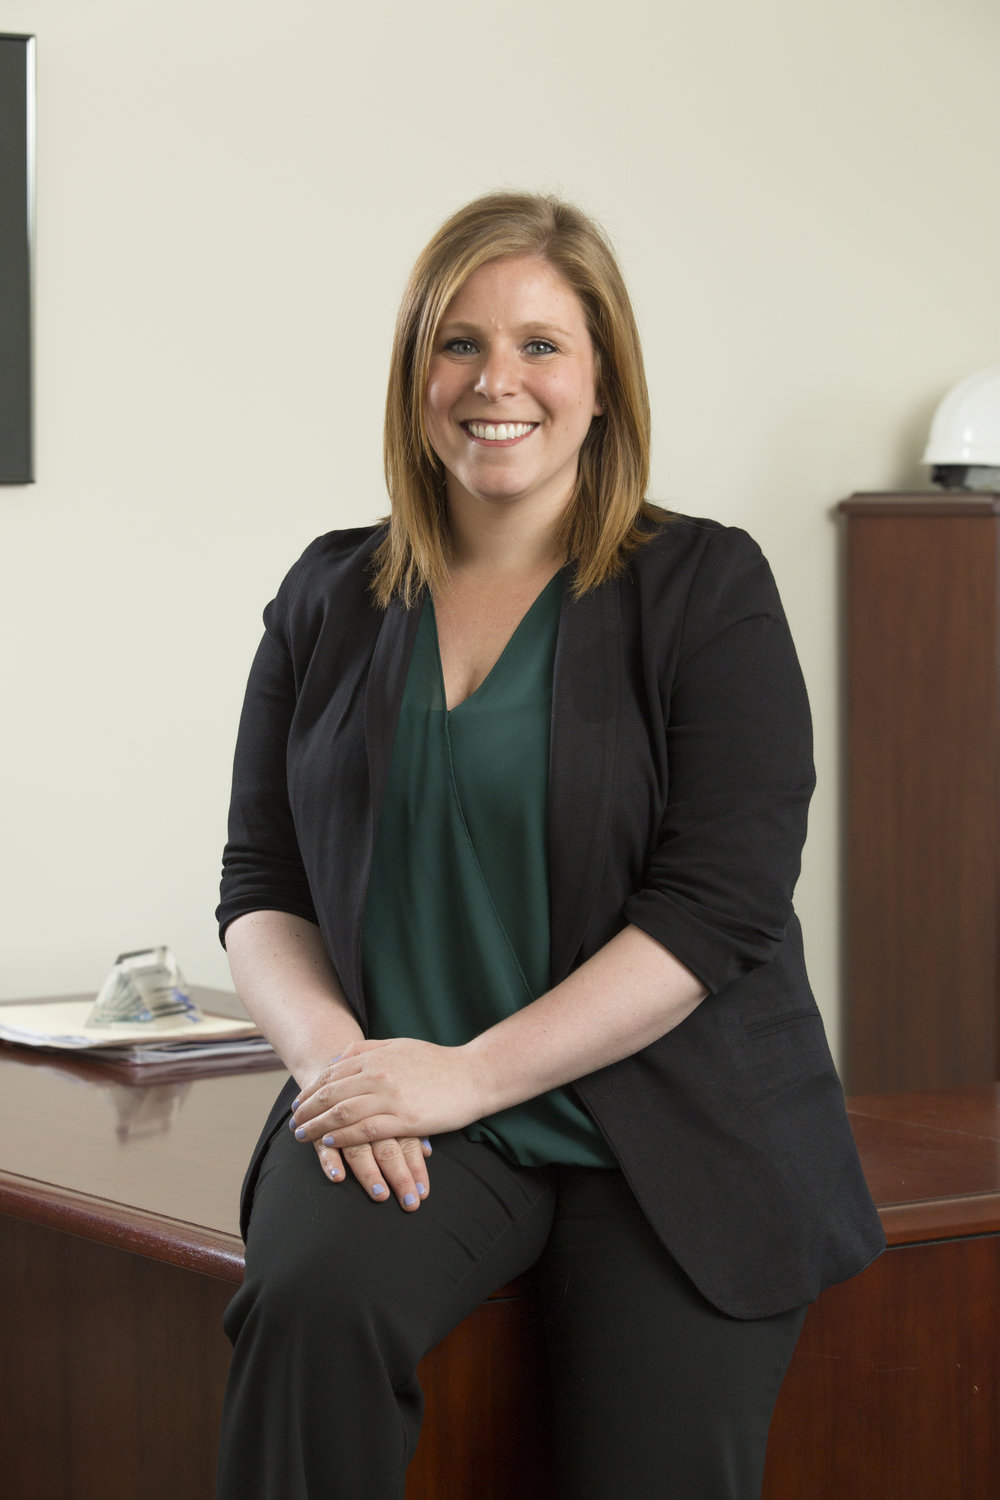 JAMI HORTON - Director of Marketing